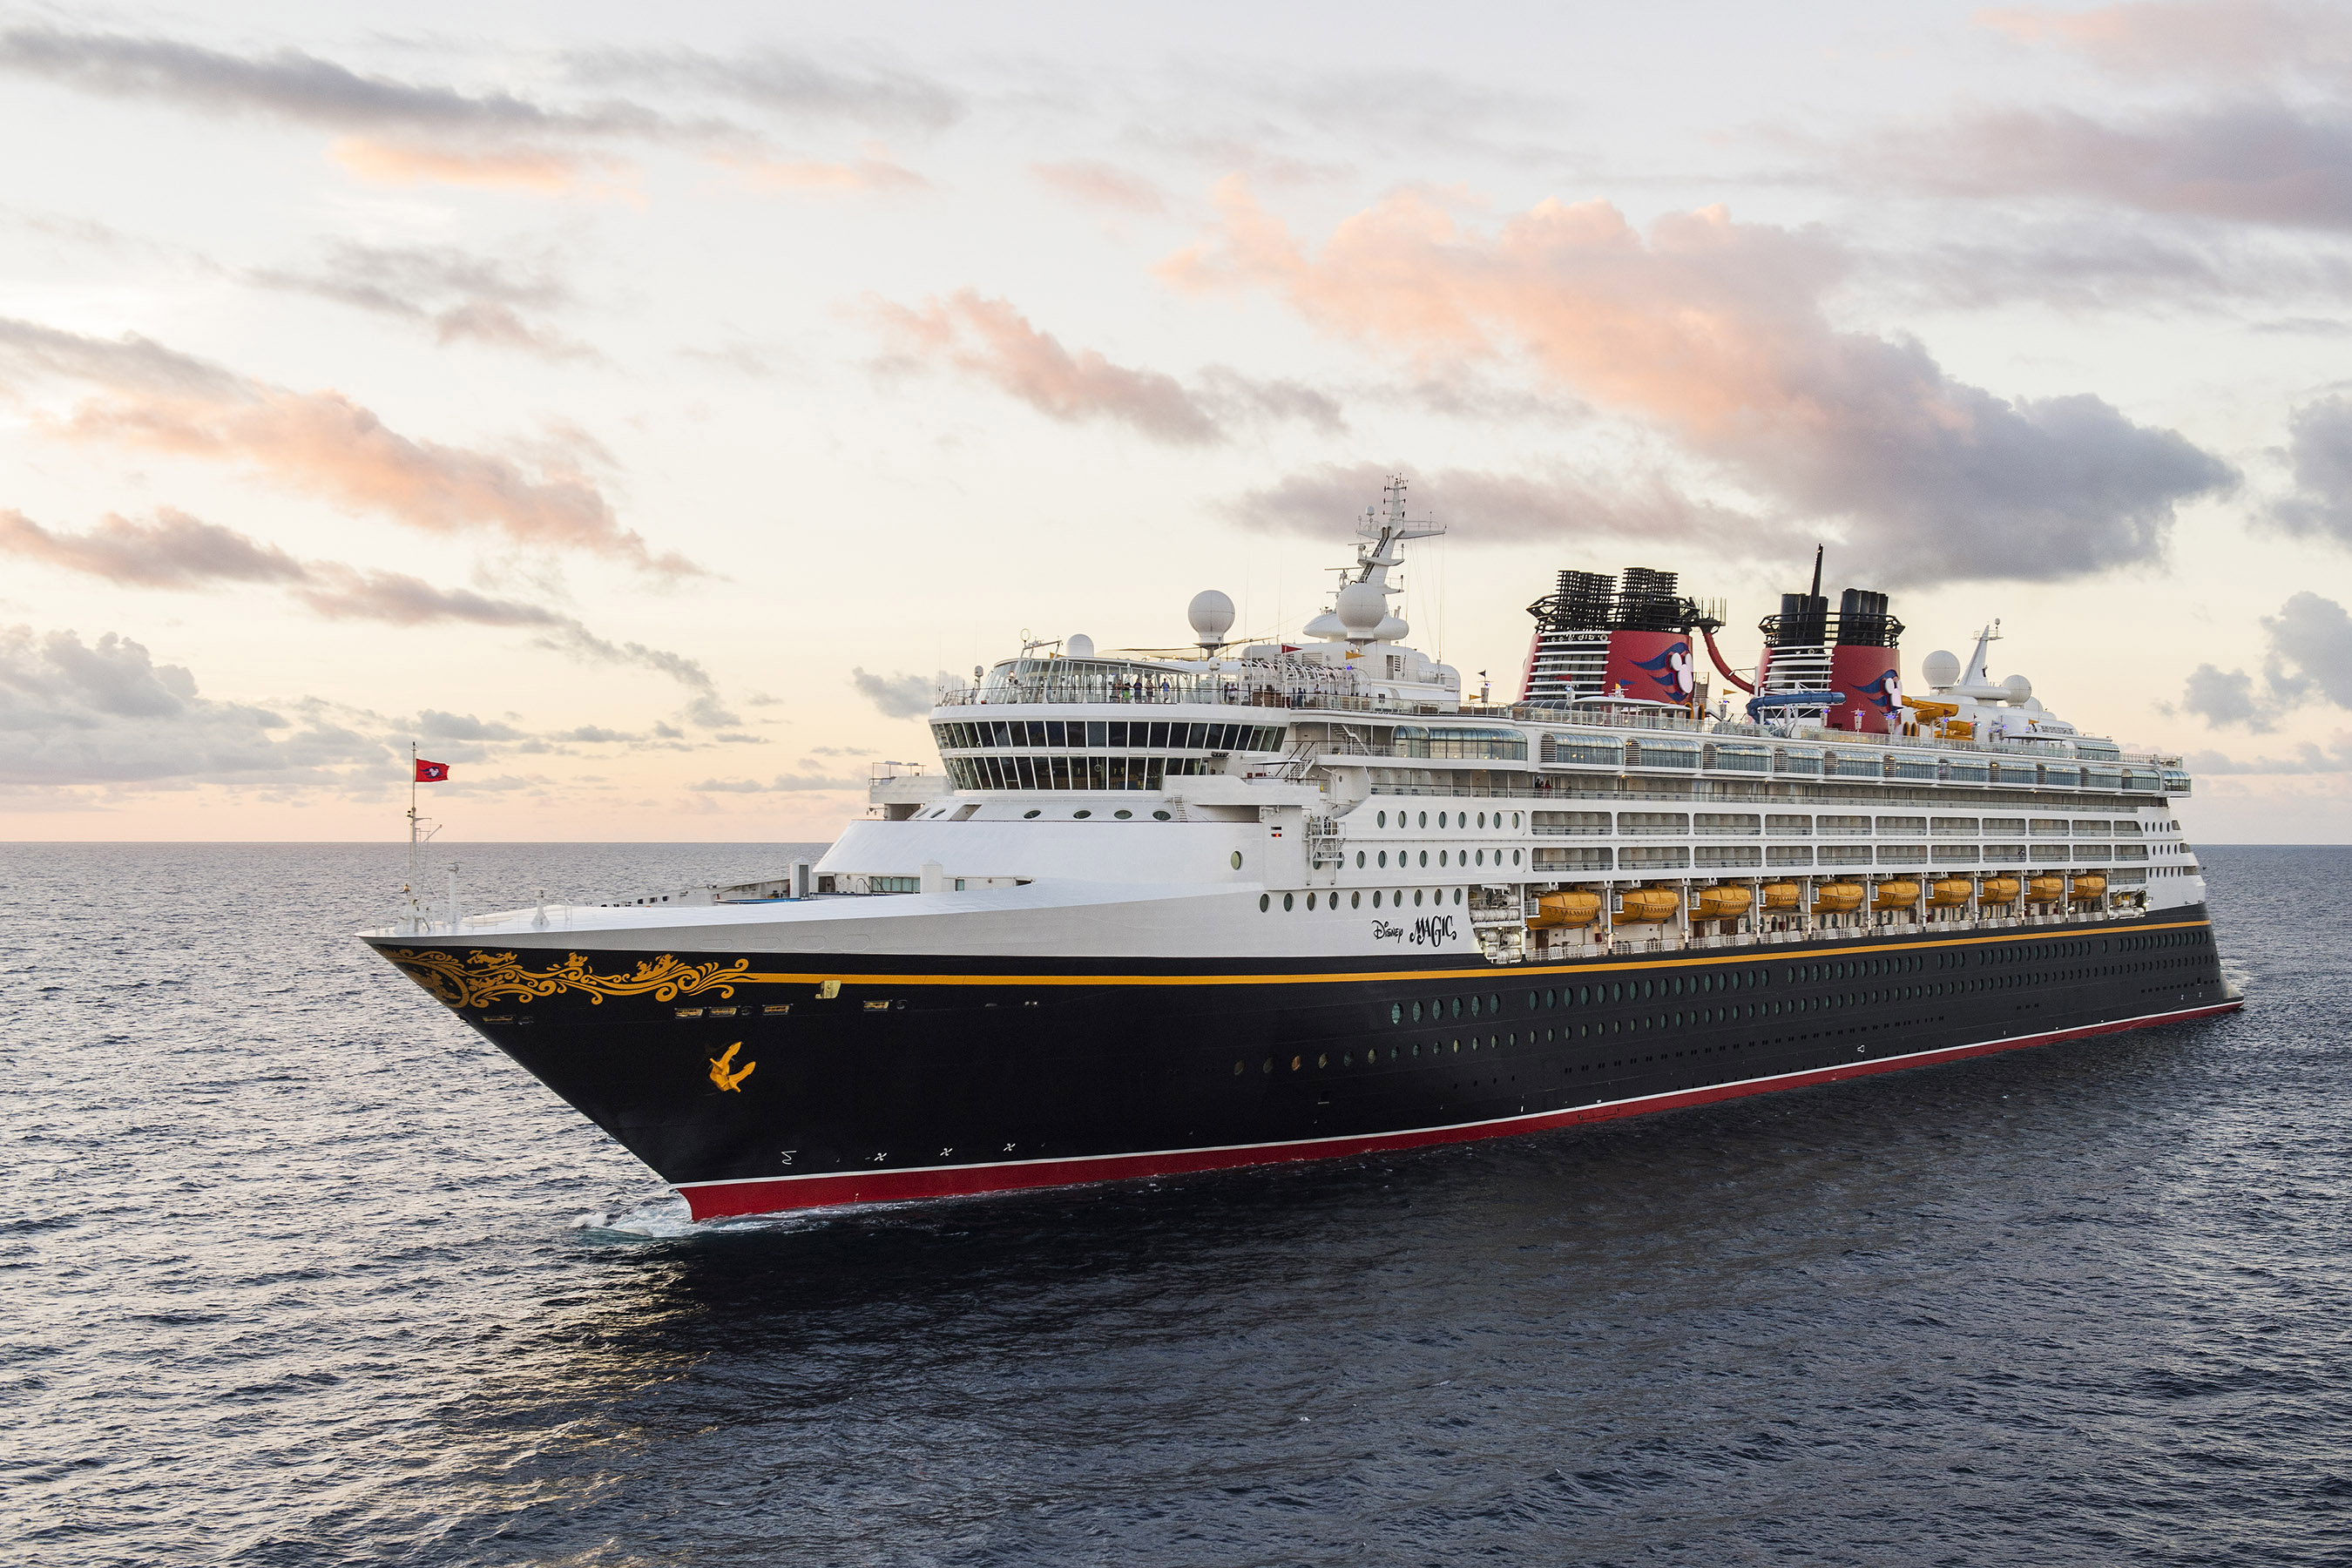 Disney Cruise Line Takes Top Awards In Cruise Critic Cruisers - Cruise ship worker blog